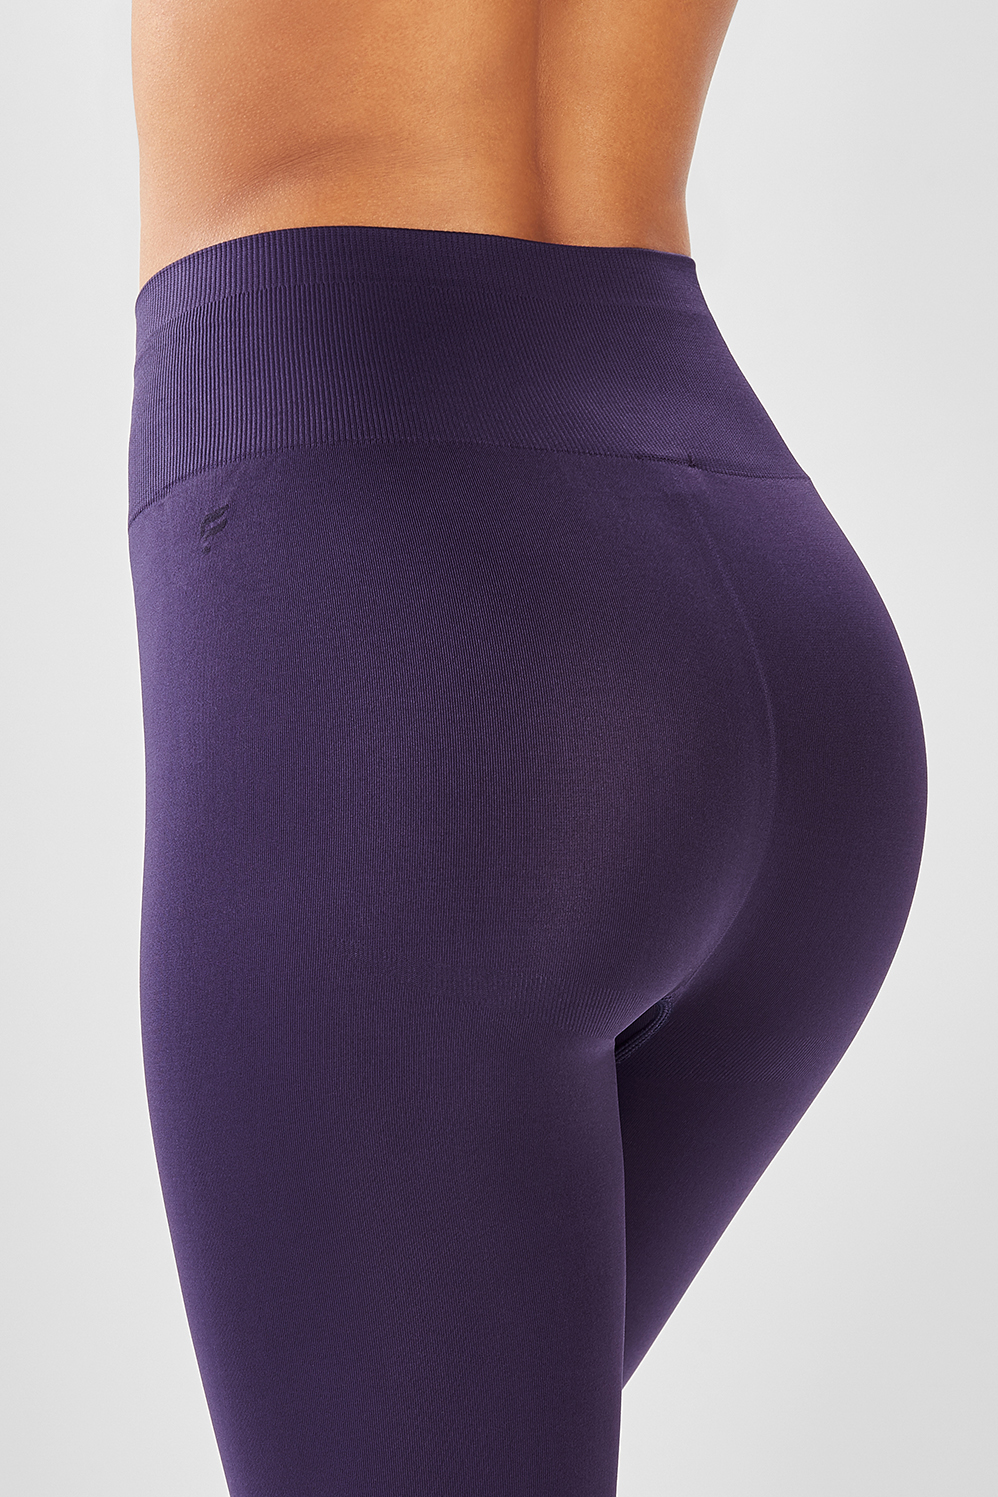 00c227ca063 Seamless High-Waisted Solid Legging - Fabletics